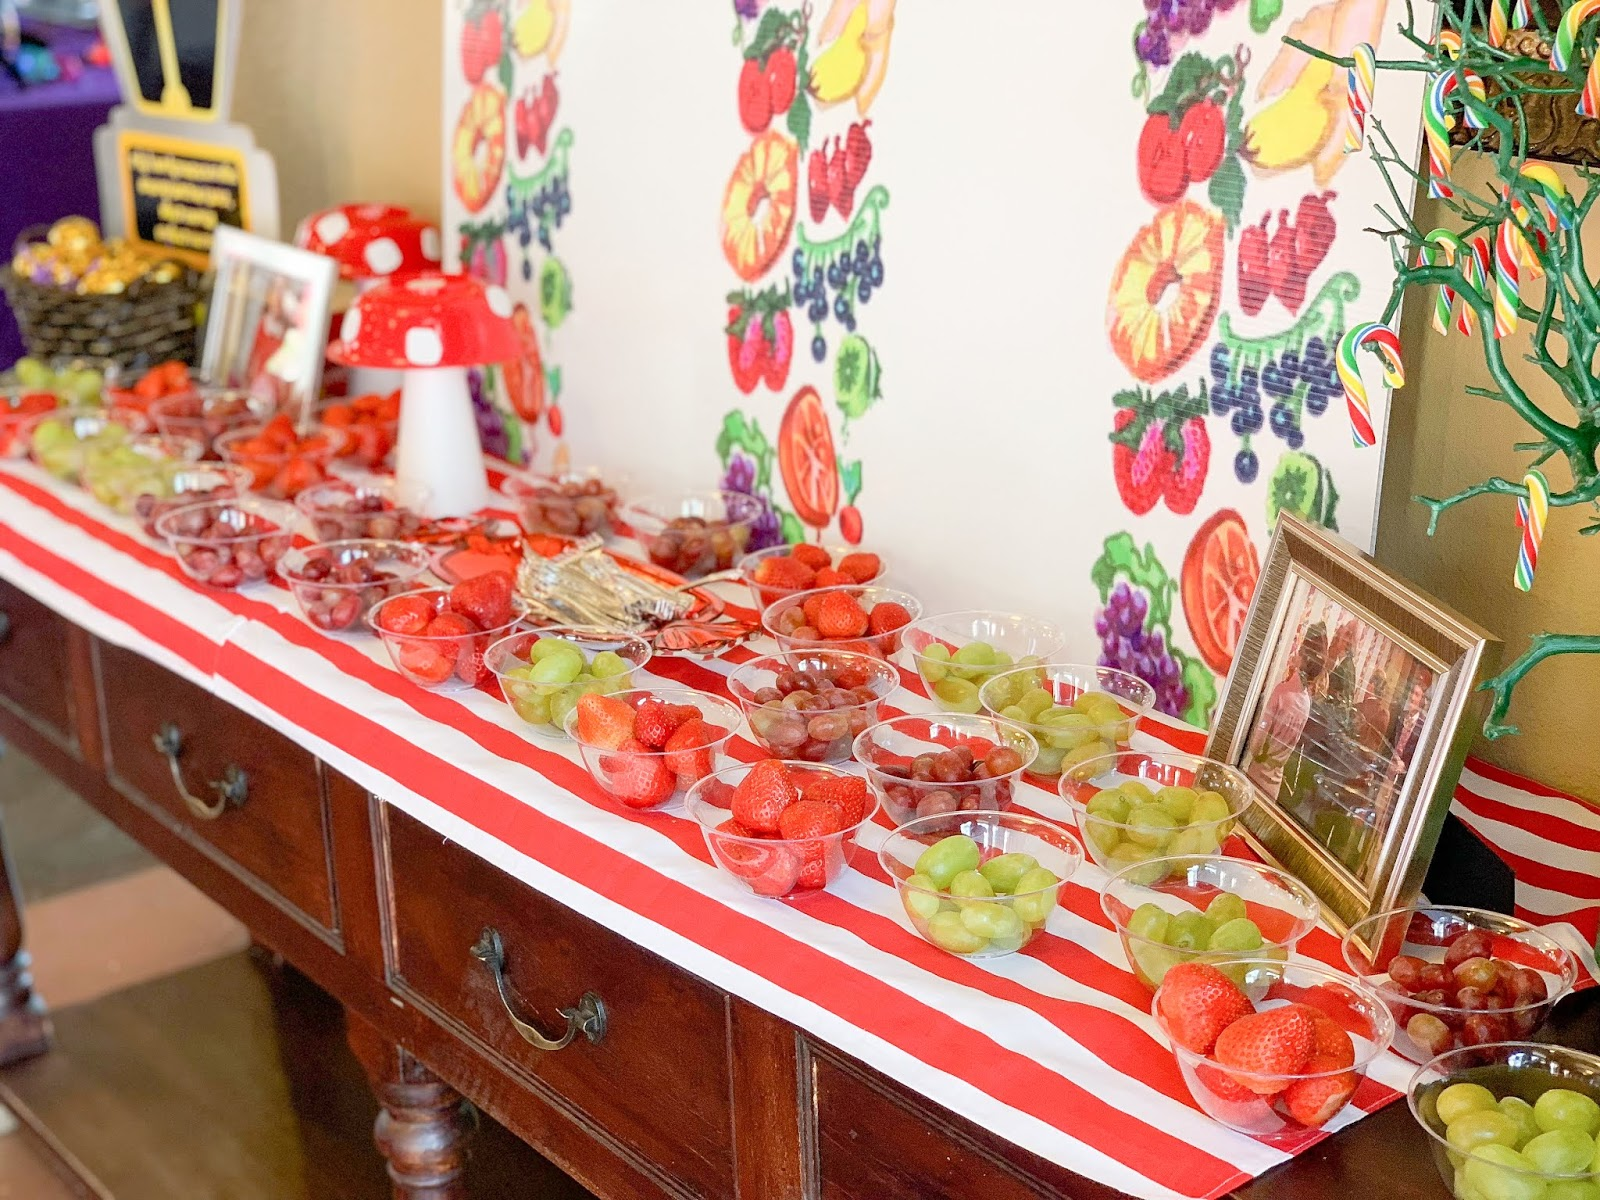 willy wonka edible wallpaper decor, fruit plates in party